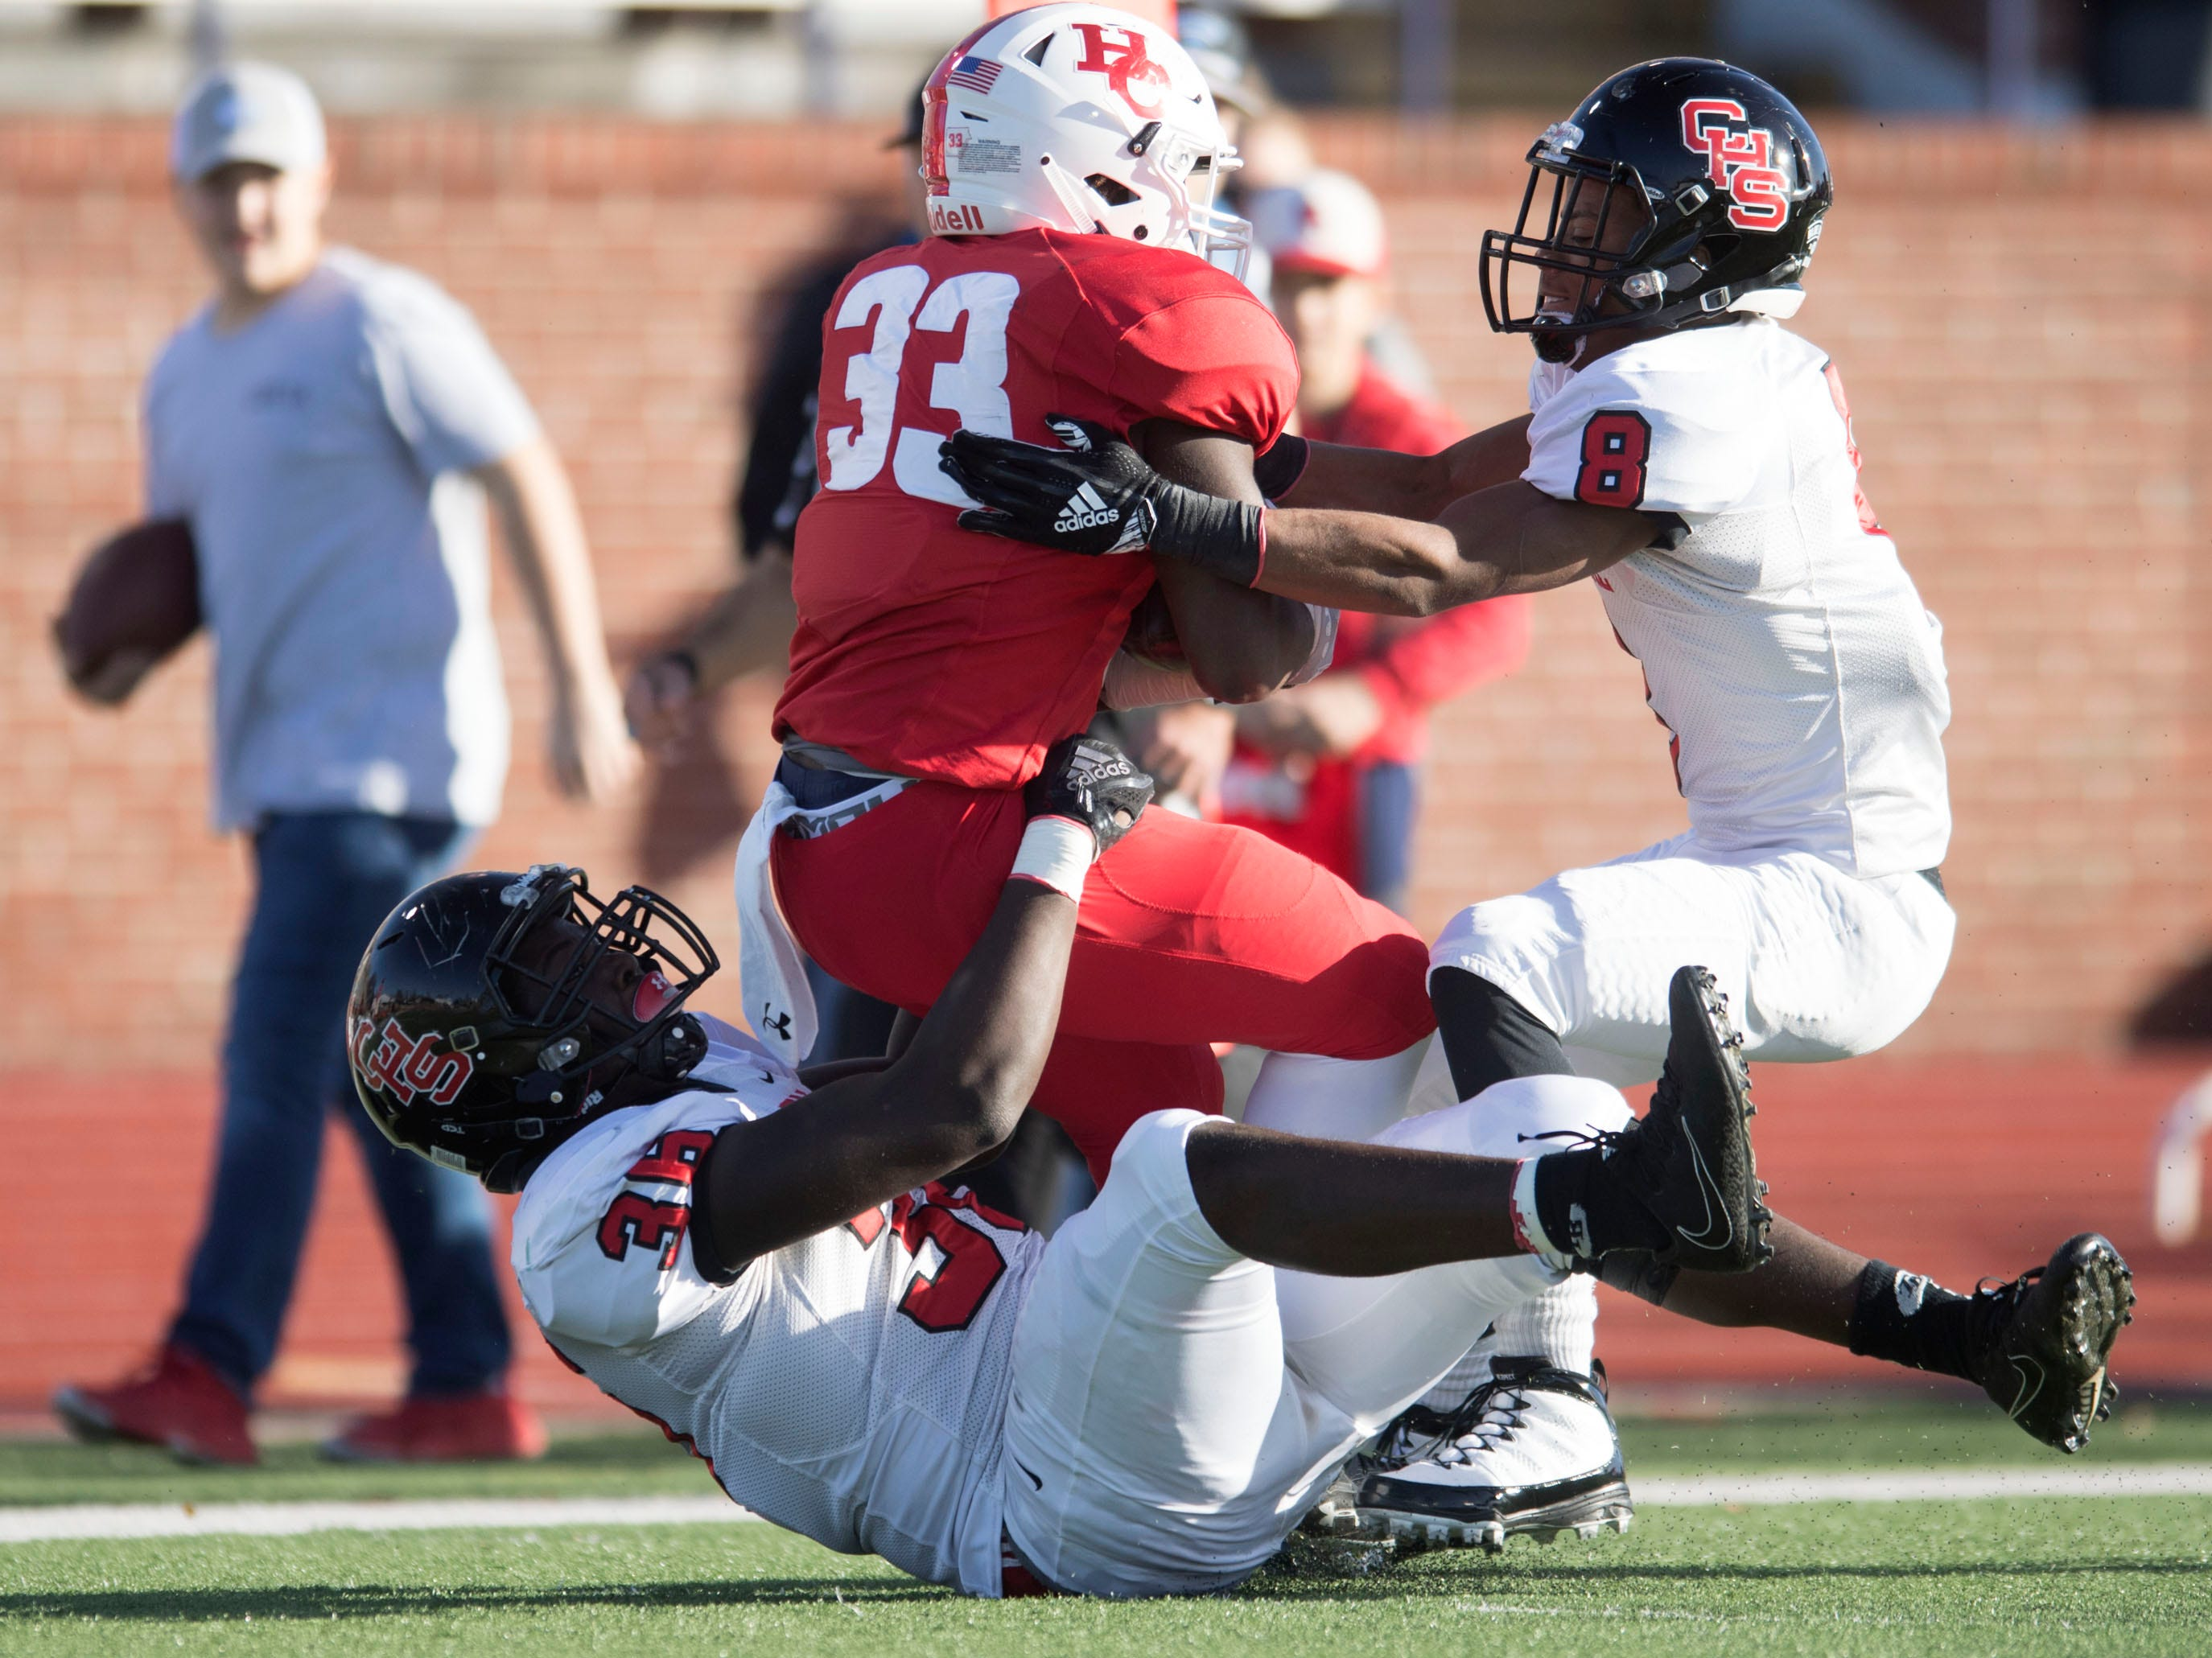 Henry County's Donovan Teague (33) is tackled by Knoxville Central's Deonte Middleton (36) and Daunte Holliday (8) in the Class 5A BlueCross Bowl at Tucker Stadium on Sunday, December 2, 2018.